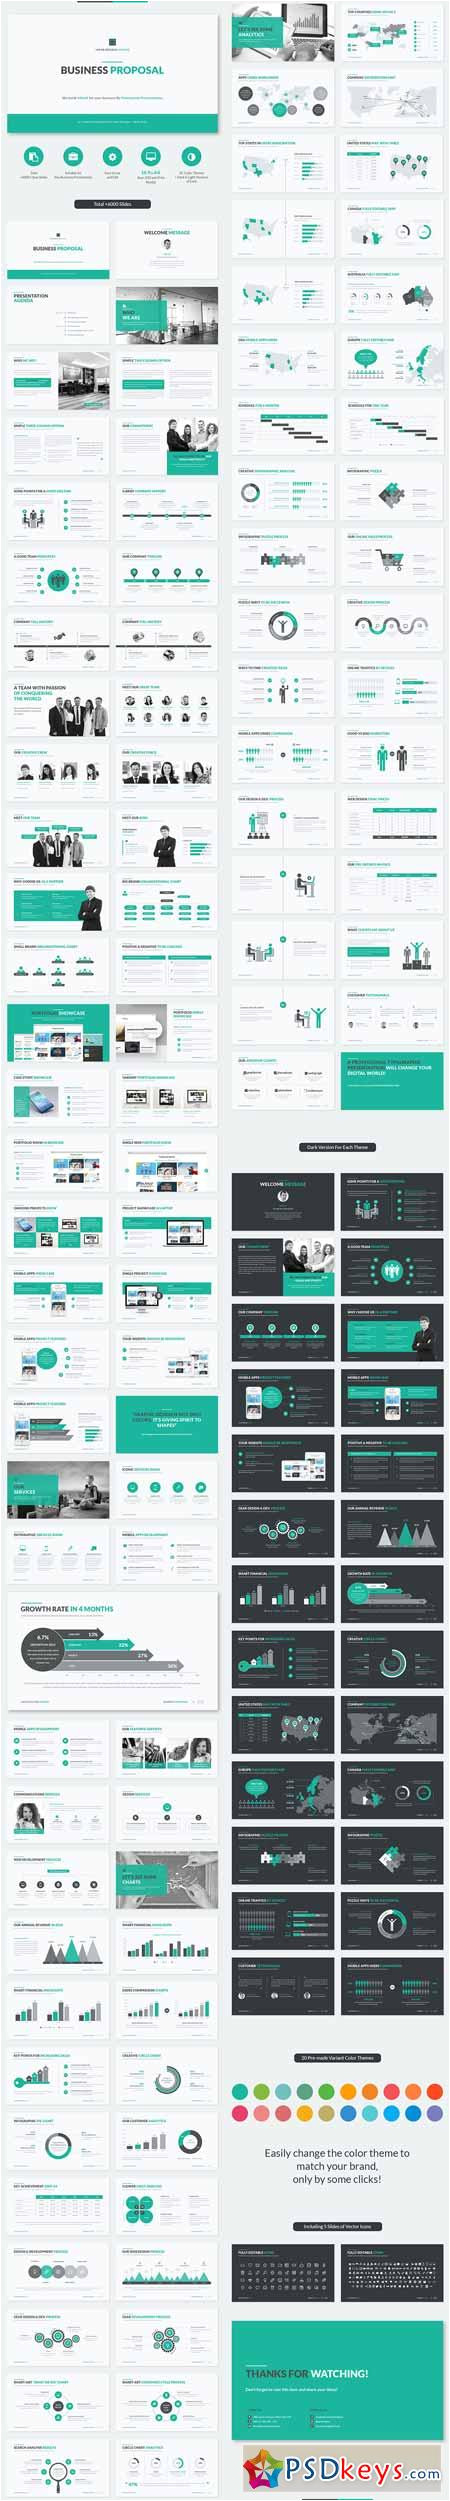 18283 business proposal powerpoint template 11833931